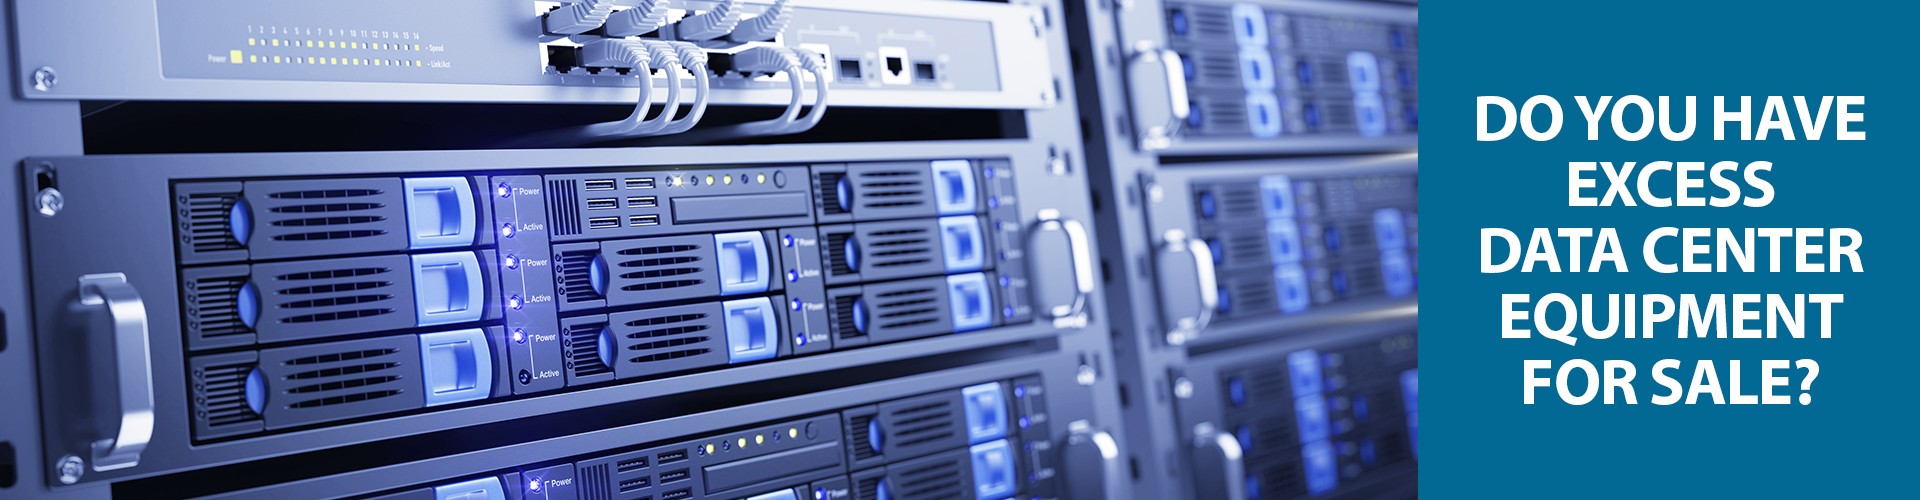 Sell Used Servers, Hardware & Equipment | Data Center Asset Recovery